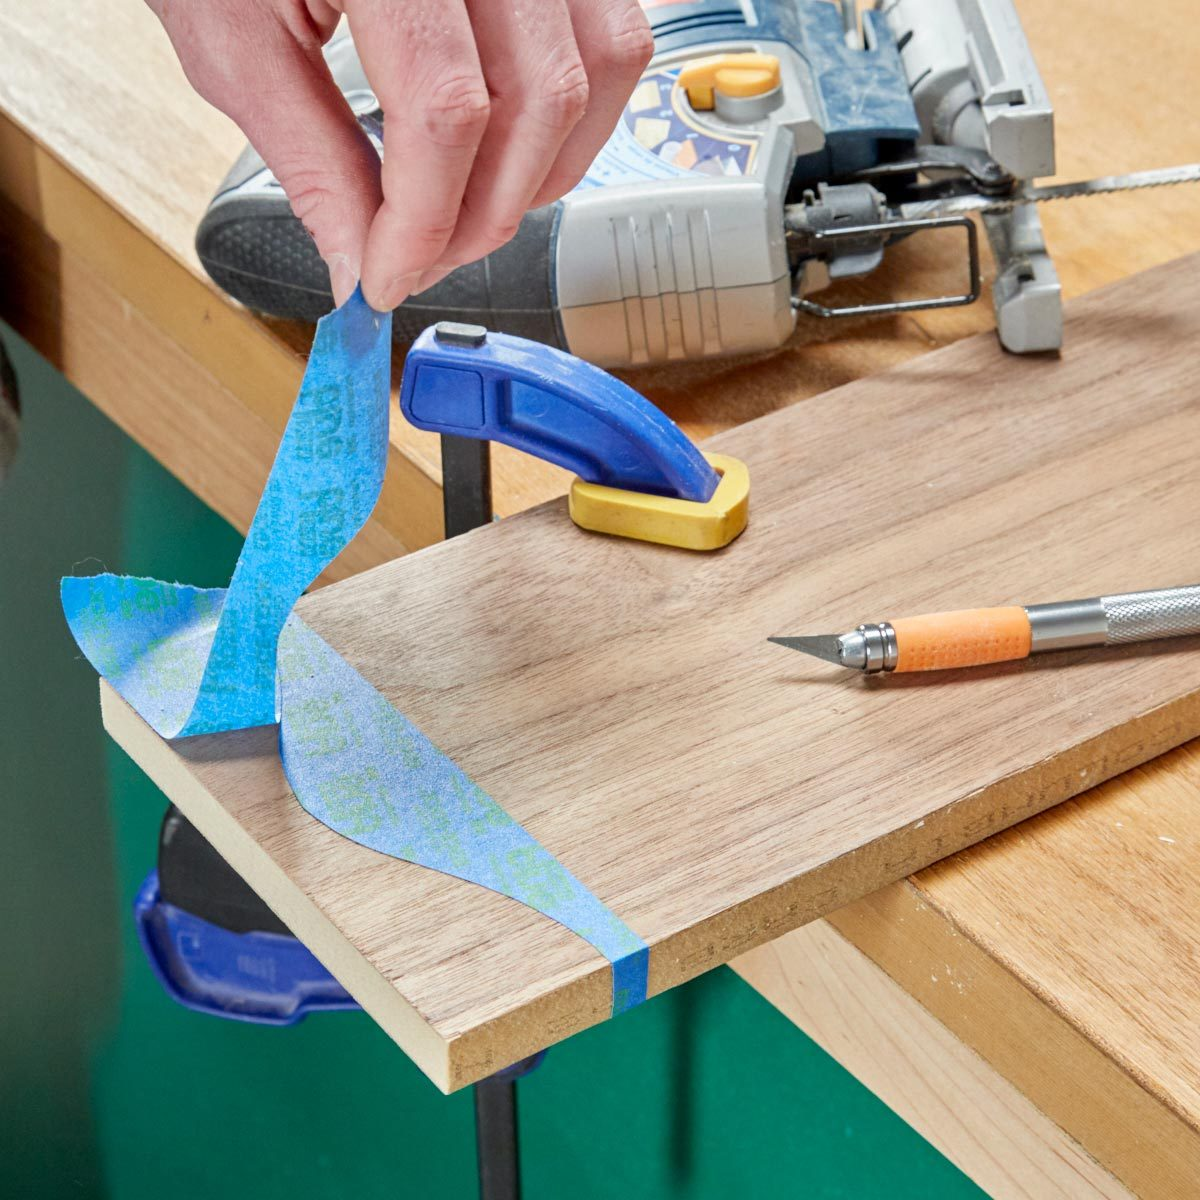 HH painters tape jigsaw guide